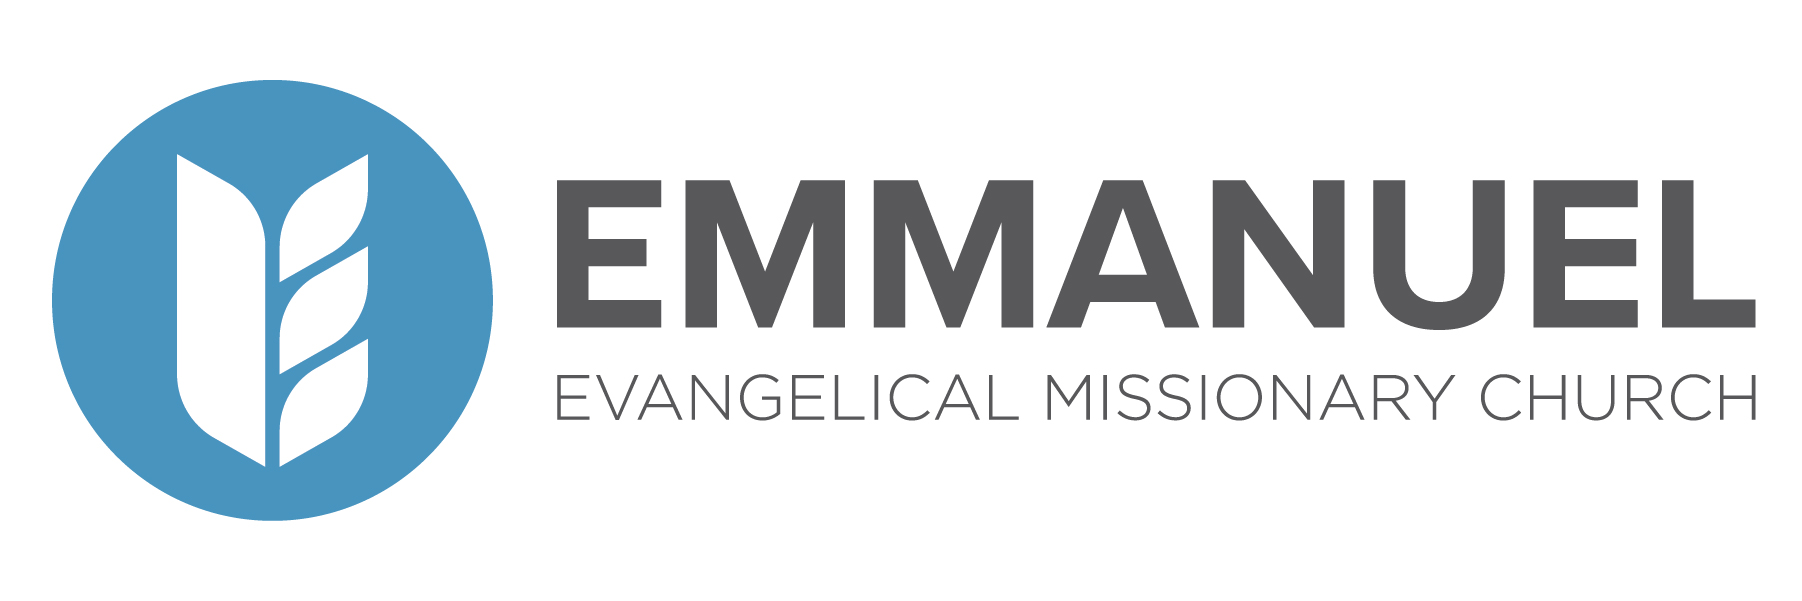 Emmanuel Evangelical Missionary Church